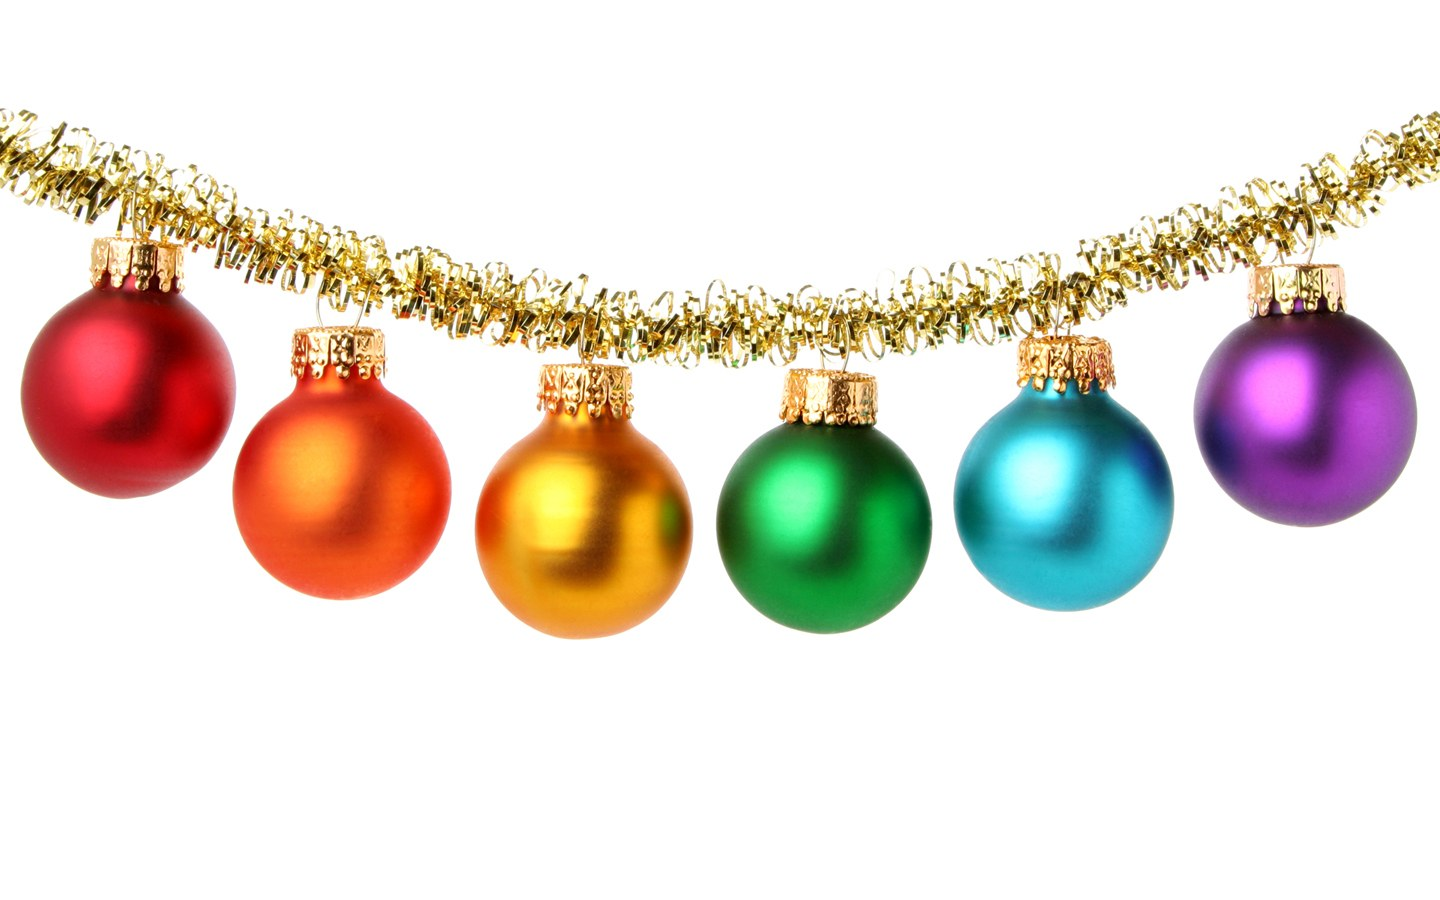 [Jeu] Association d'images - Page 20 Colorful_Christmas_ball_christmas_bauble_21000994